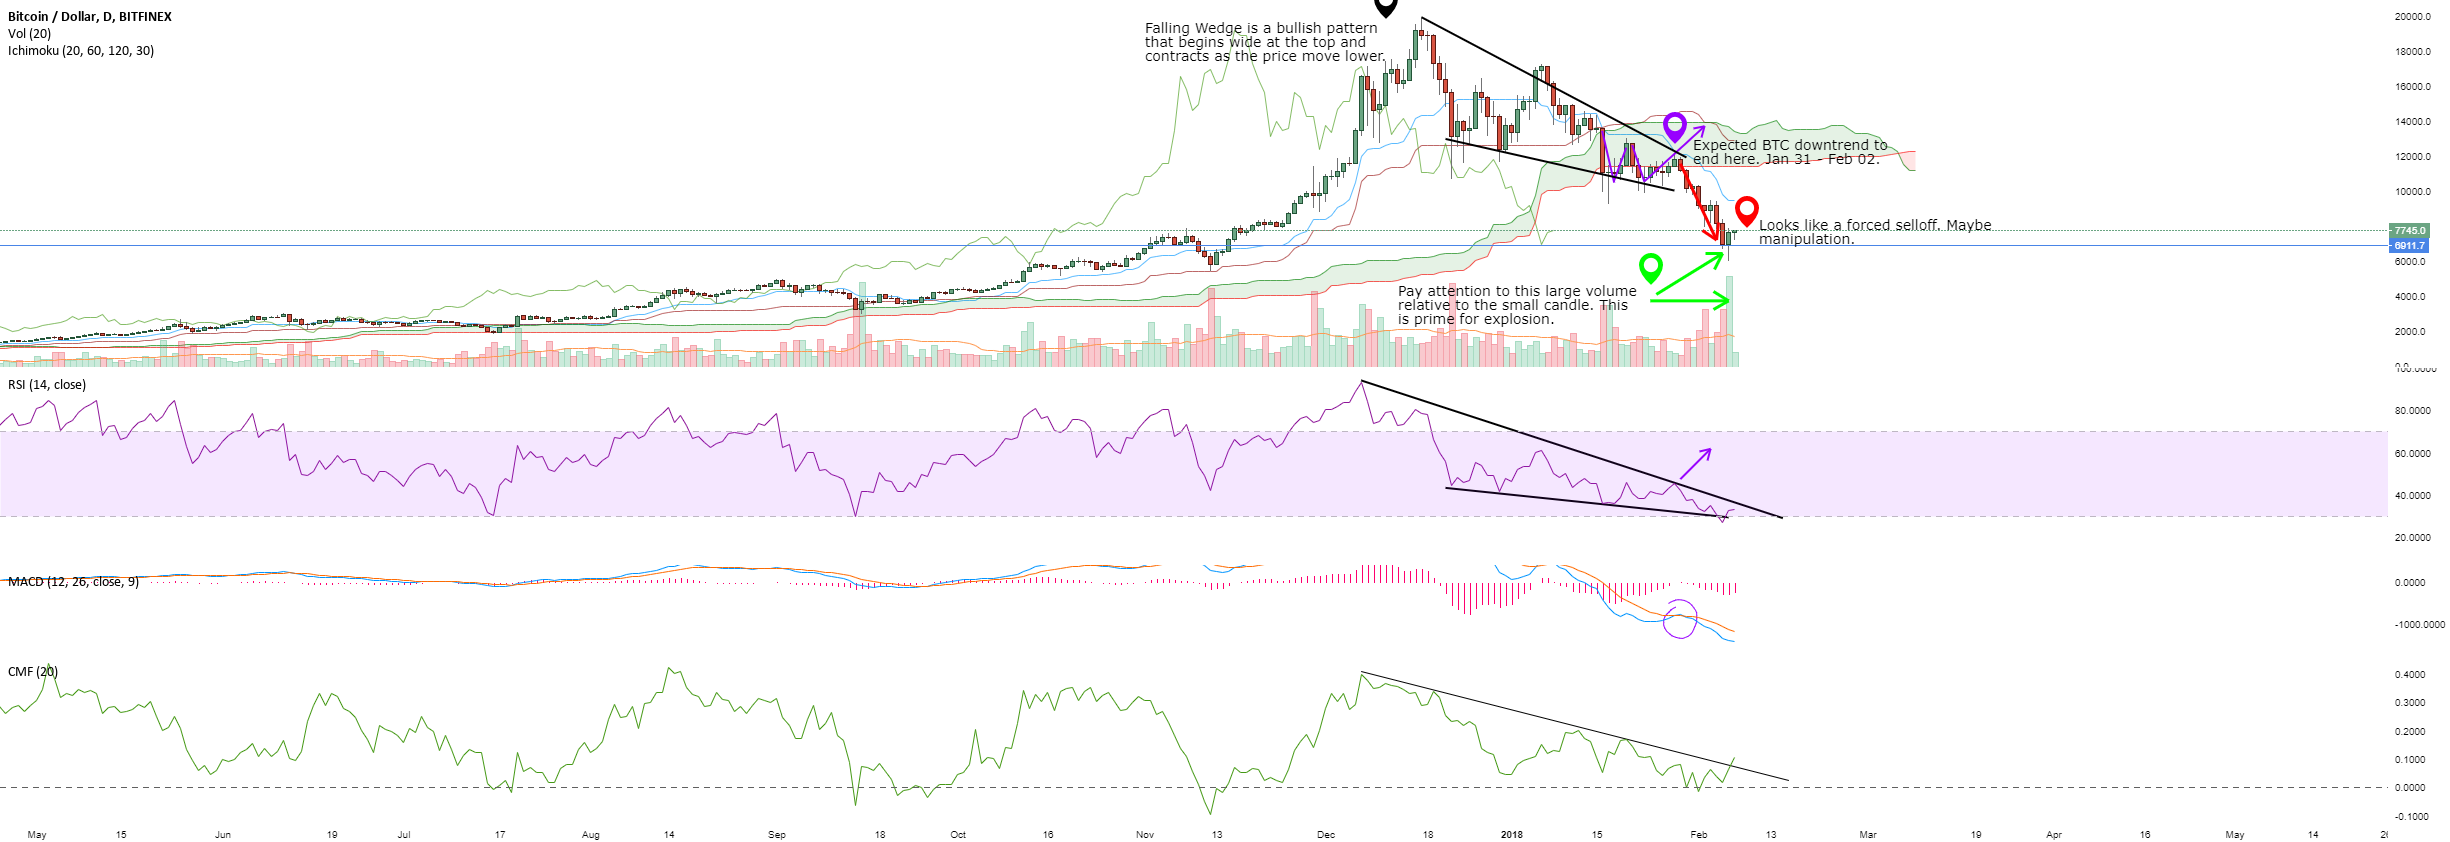 BTC FALLING WEDGE BULLISH PATTERN